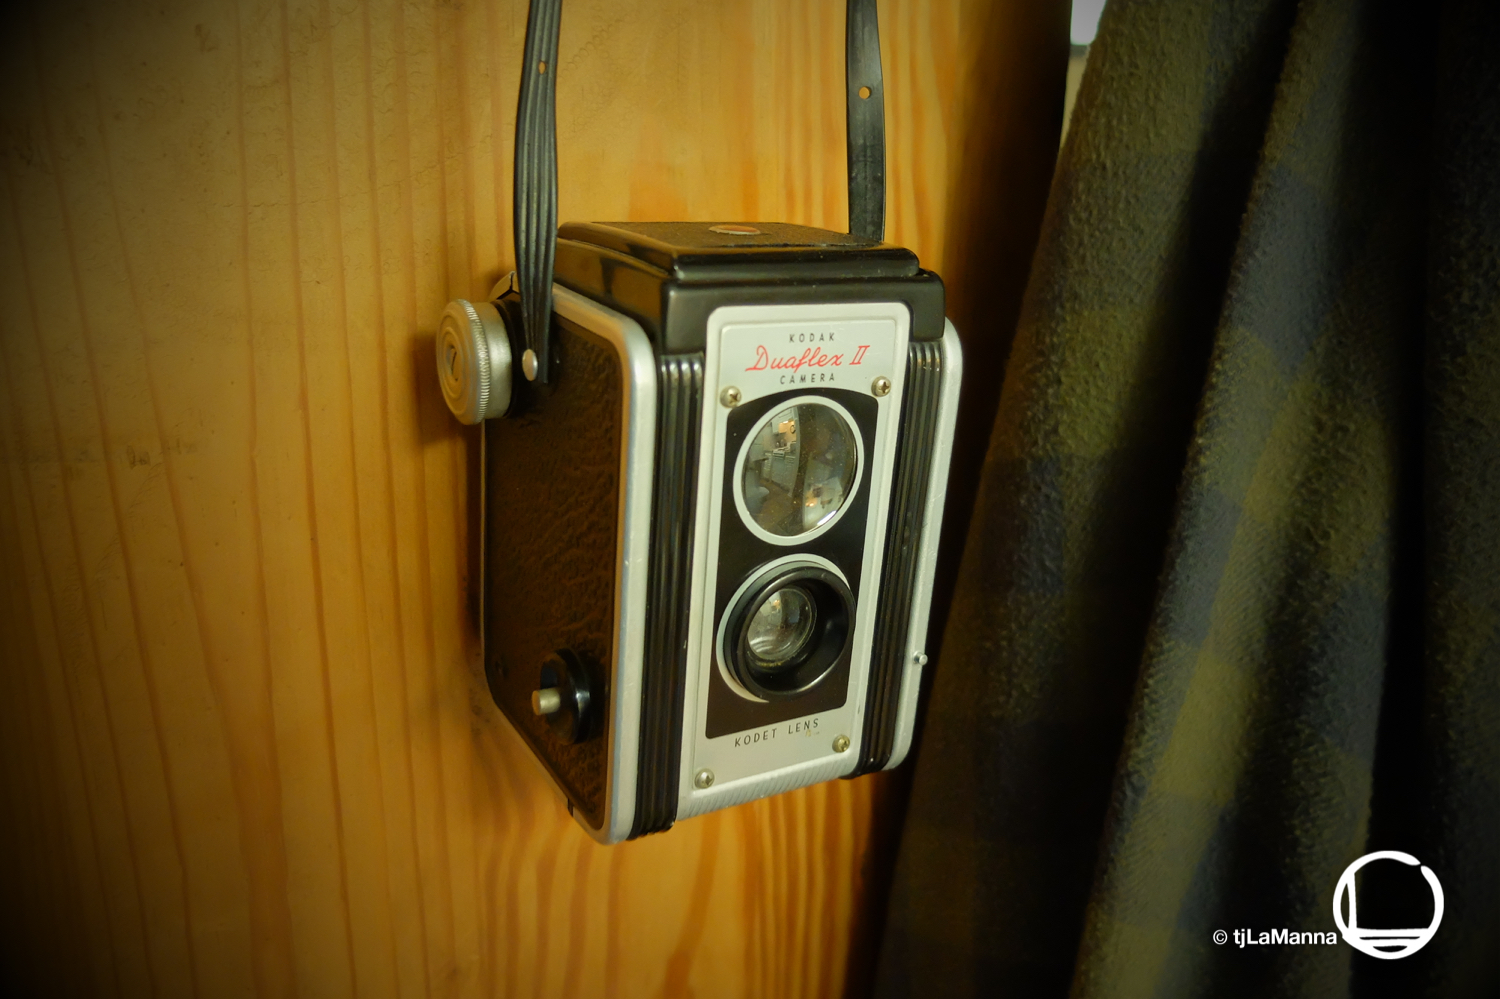 My Kodak Duoflex II - the same model camera the was my first, at the age of 6, 7, or 8.  : : : :